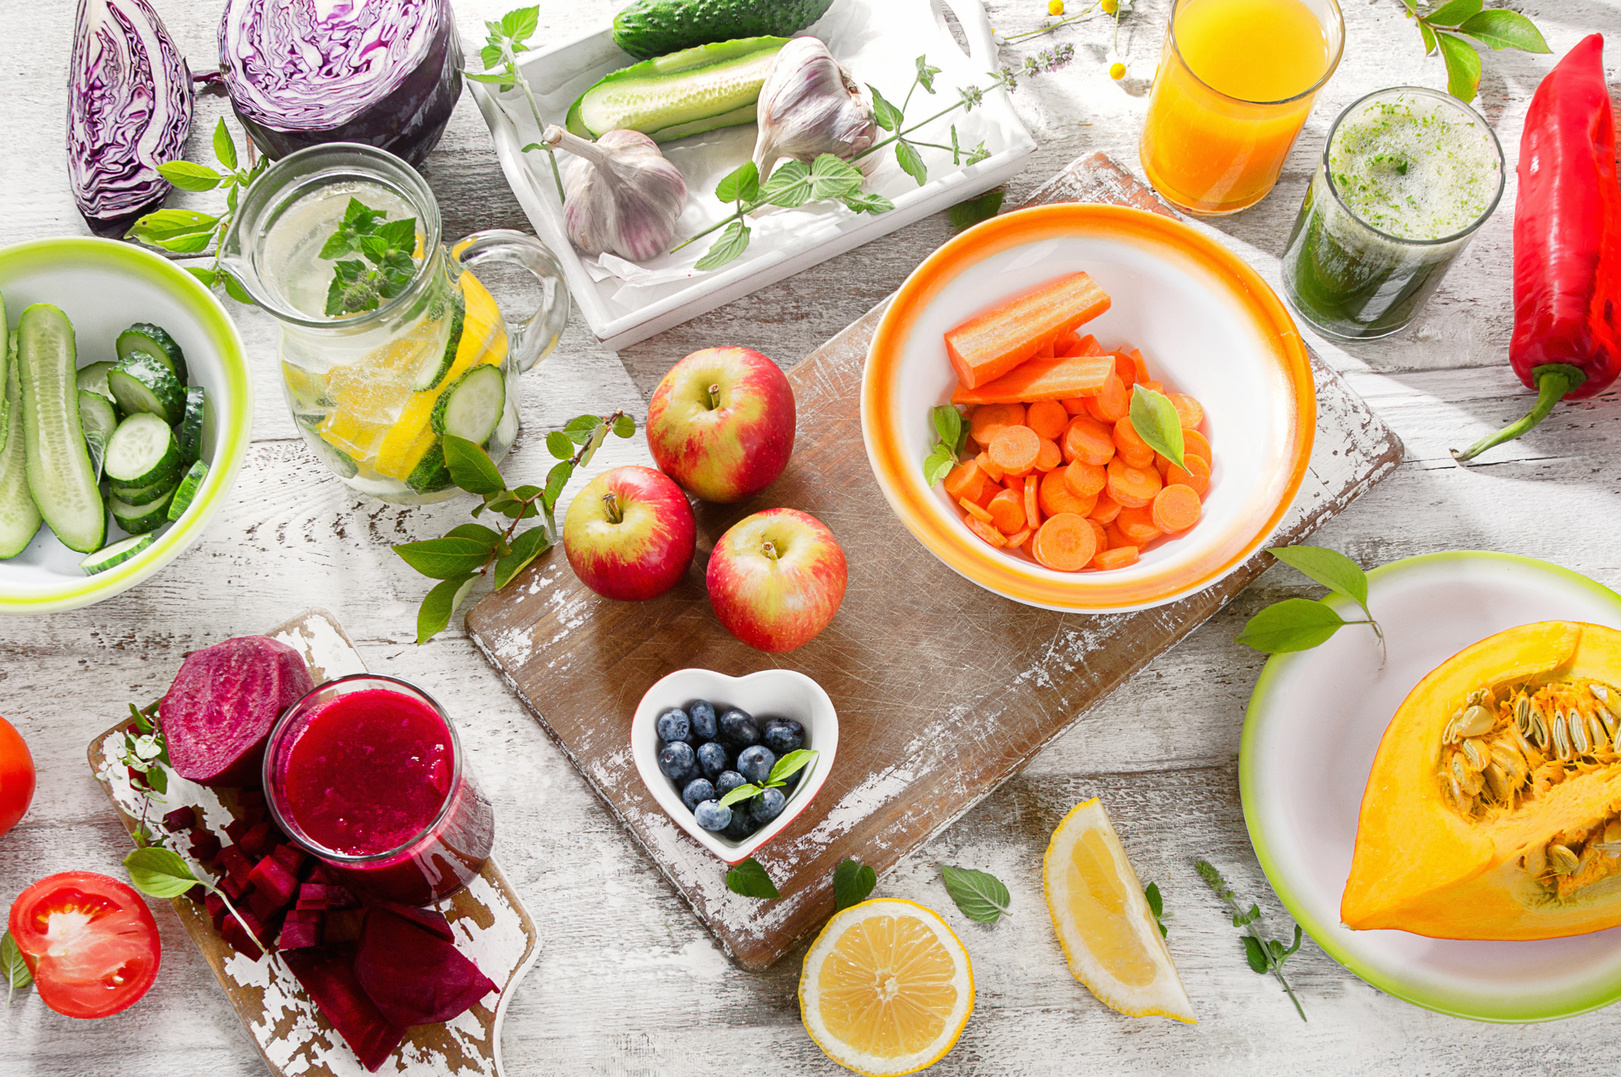 Different fruits, juices and vegetables. Healthy diet detox food. Top view